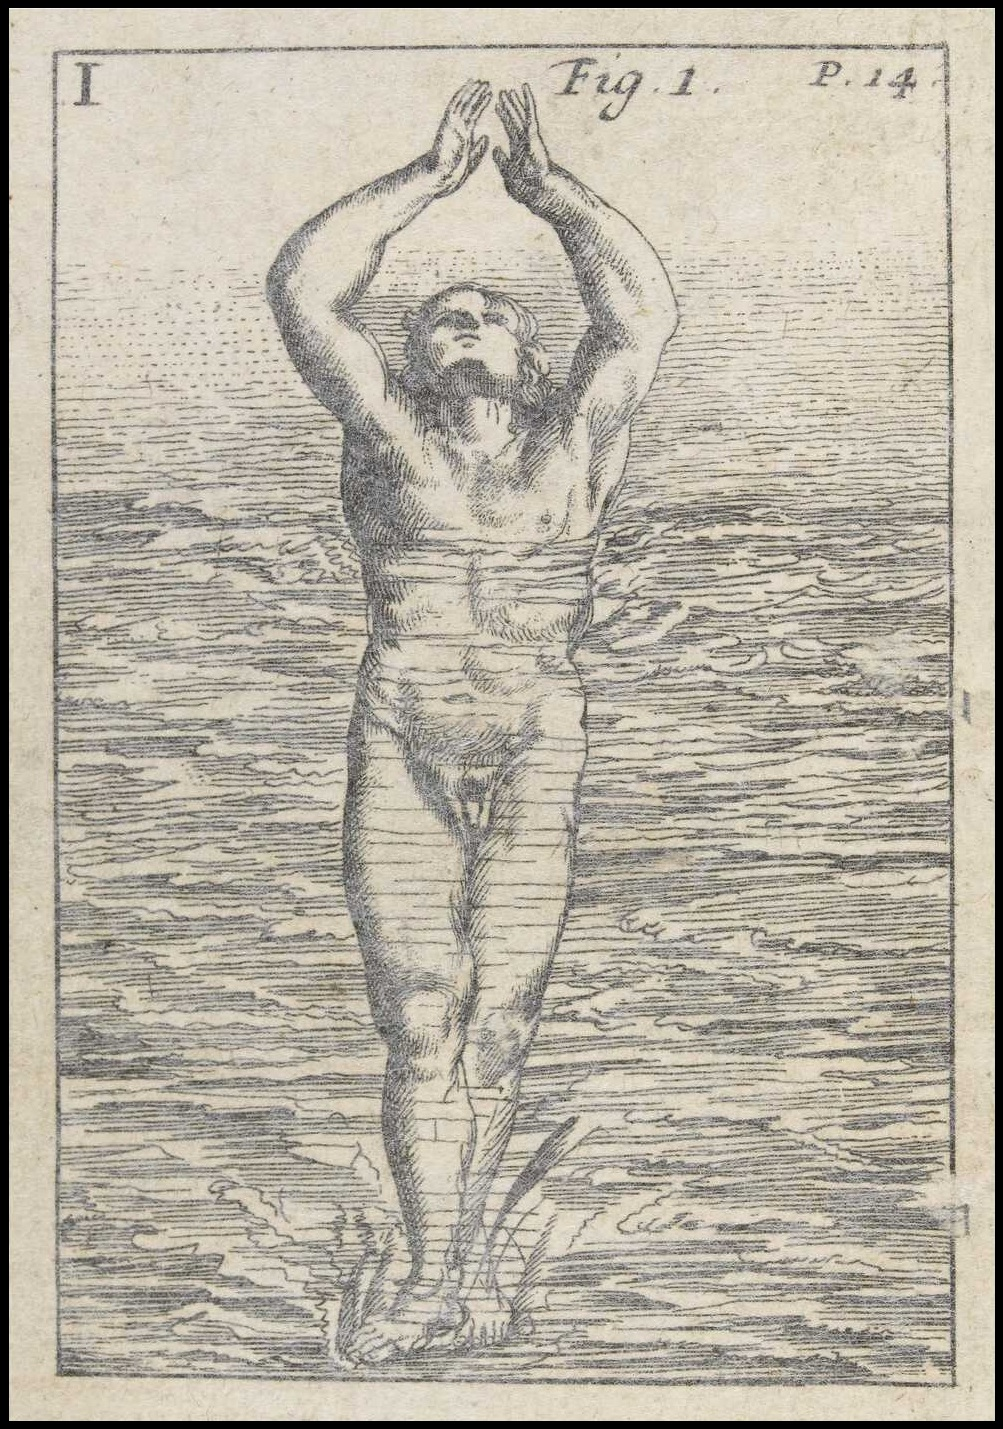 illustration in early modern swimming manual of nude man entering water feet first